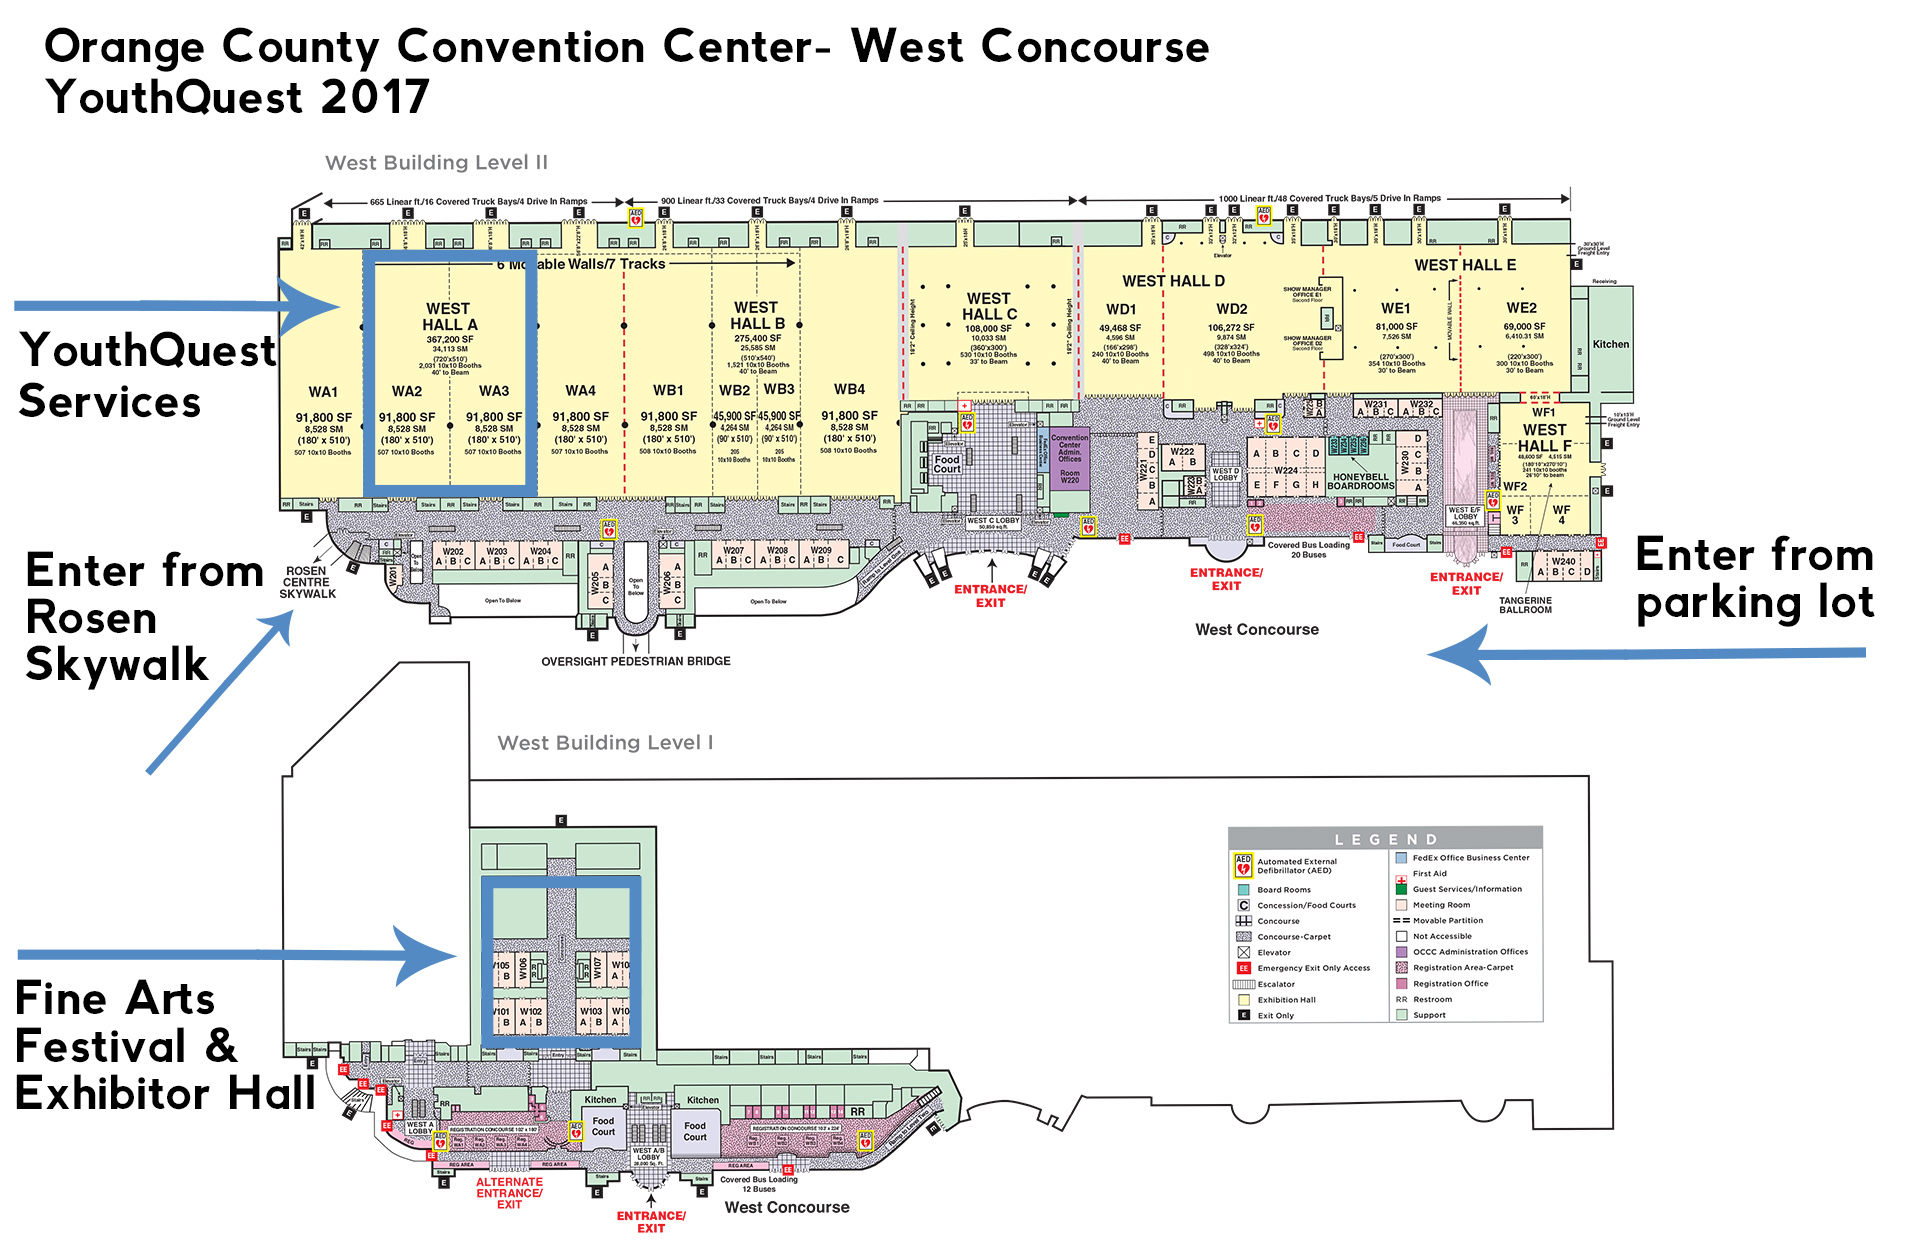 Oregon Convention Center Map Exhibit Hall In The Oregon - Orange county convention center map